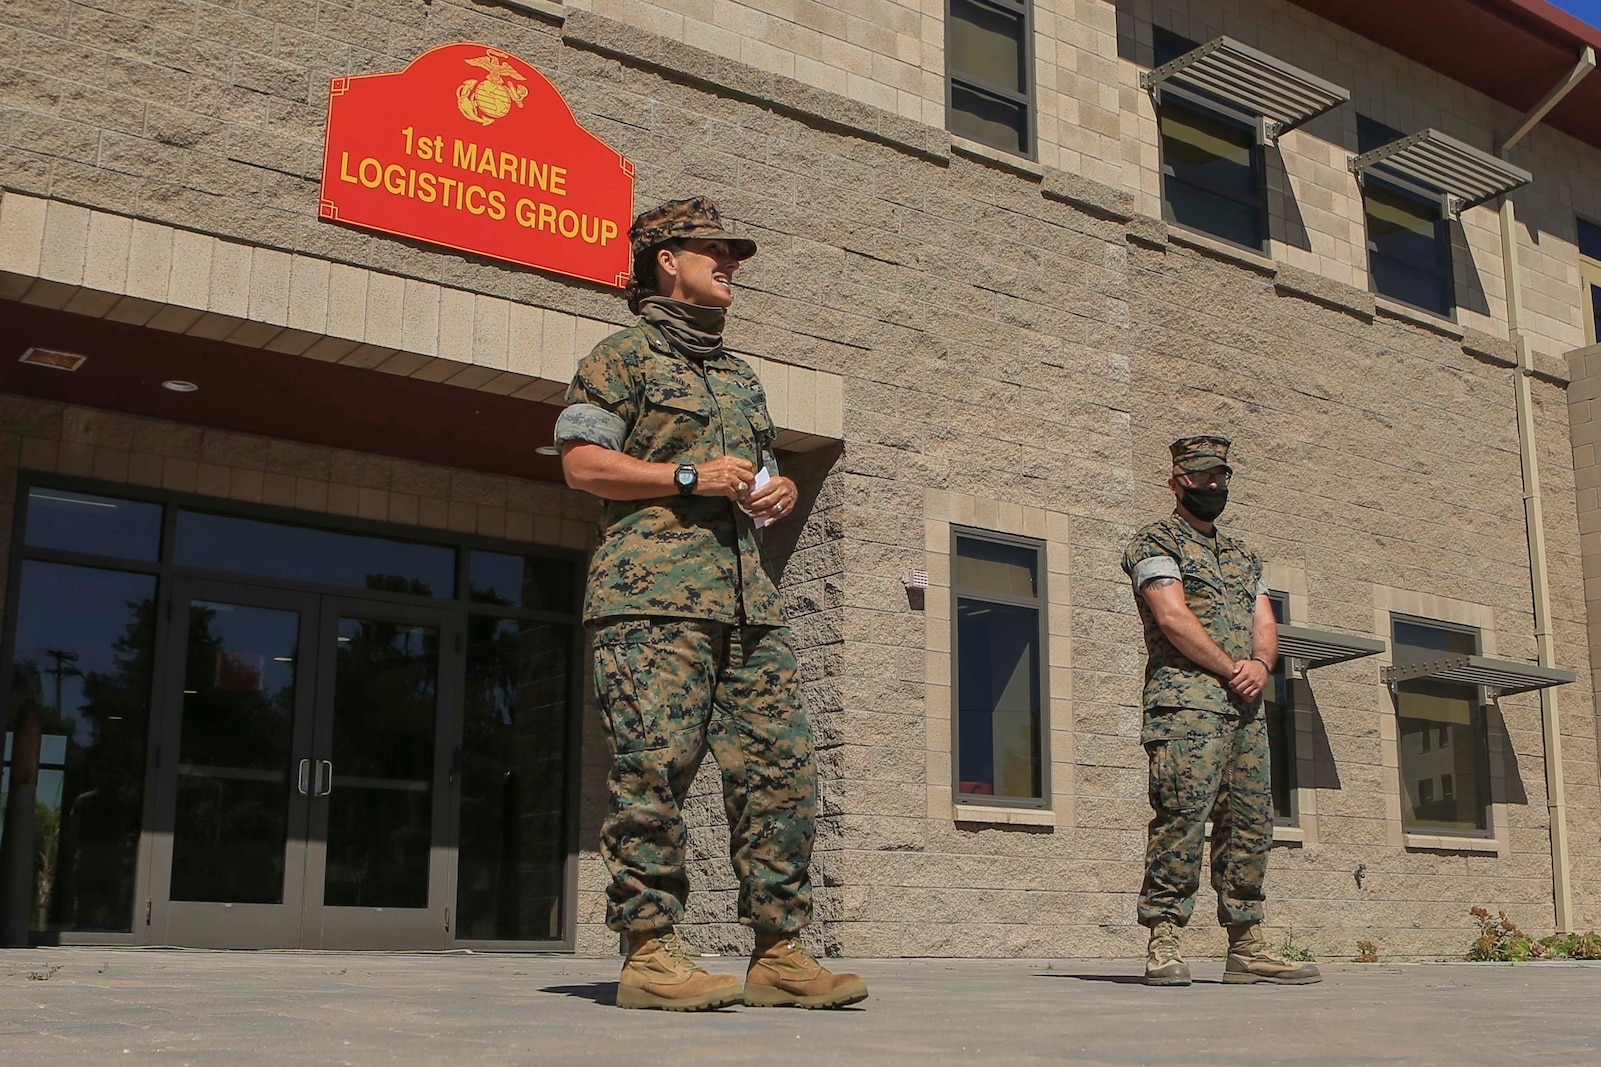 Commanding General of 1st Marine Logistics Group Brig. Gen. Bobbi Shea recognizes Cpl. Cameron Rider, a radio operator with Combat Logistics Regiment 1, winner of 1st MLG Innovation Award, for his design and fabrication of a vehicle-mounted antenna during an award presentation ceremony on Camp Pendleton, California, July 16, 2020.